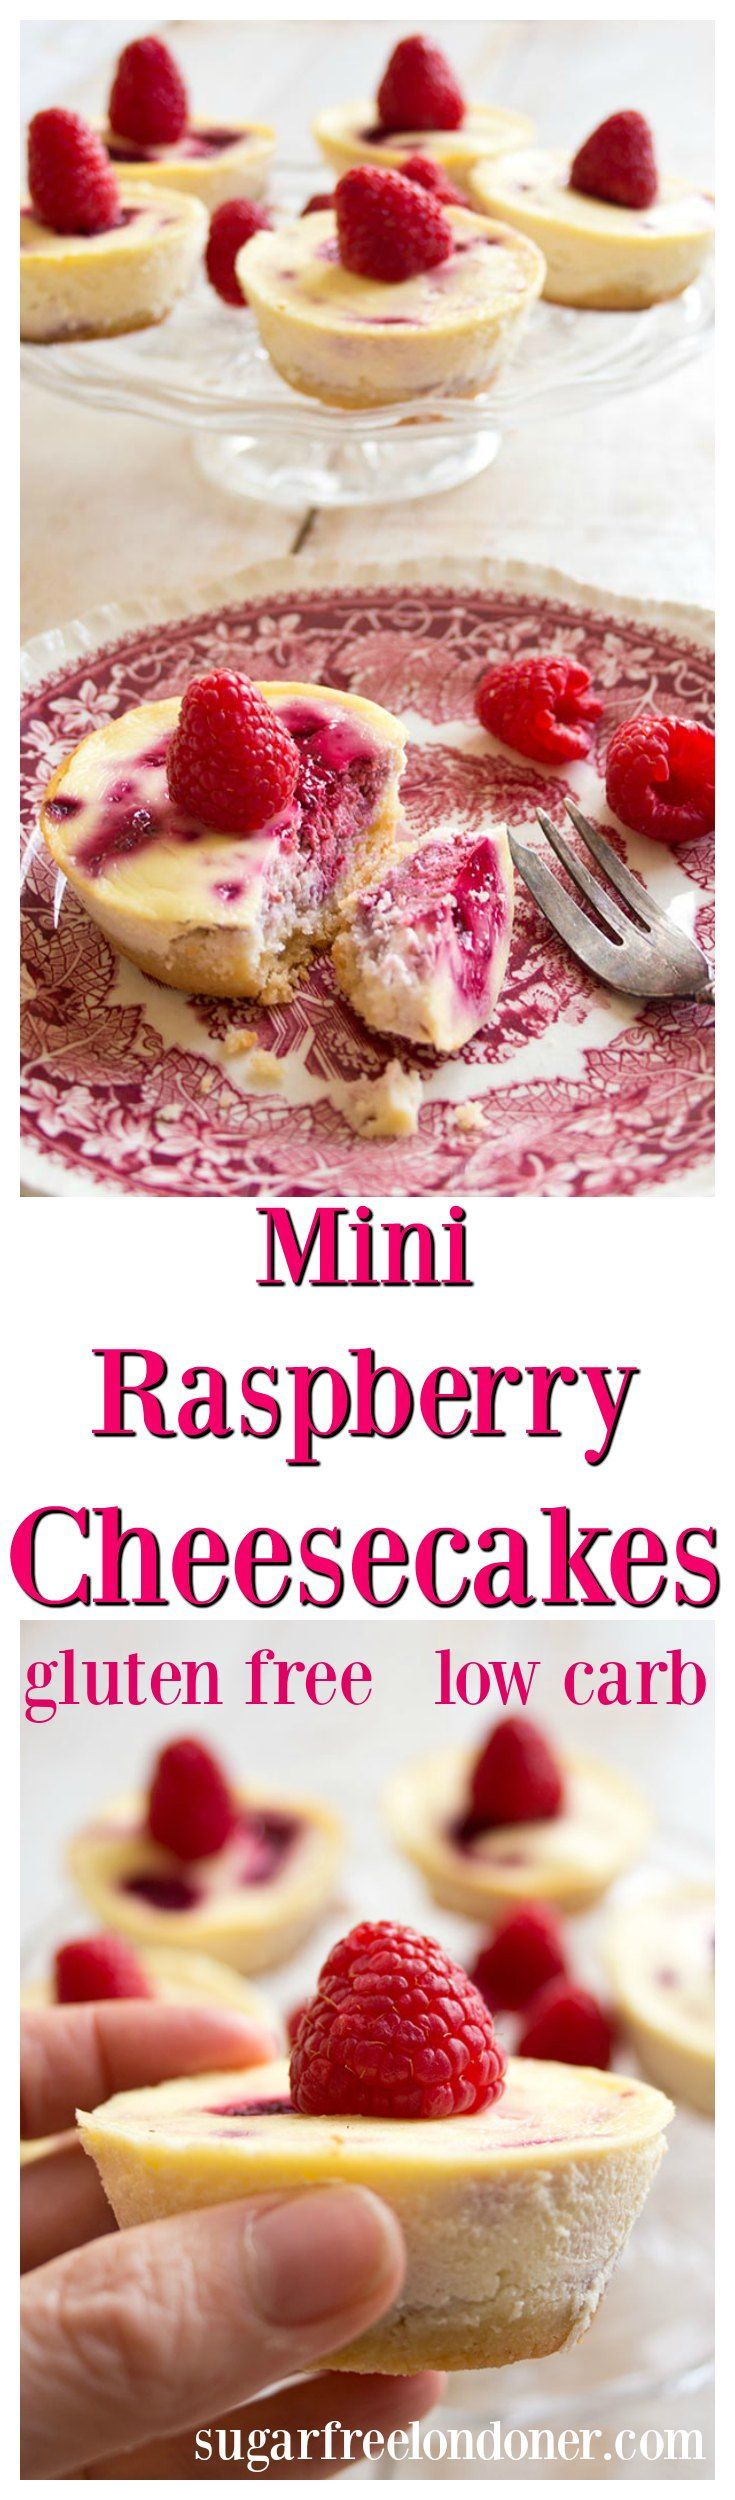 These creamy, fruity individual mini raspberry cheesecakes are a perfectly guilt free low carb indulgence.